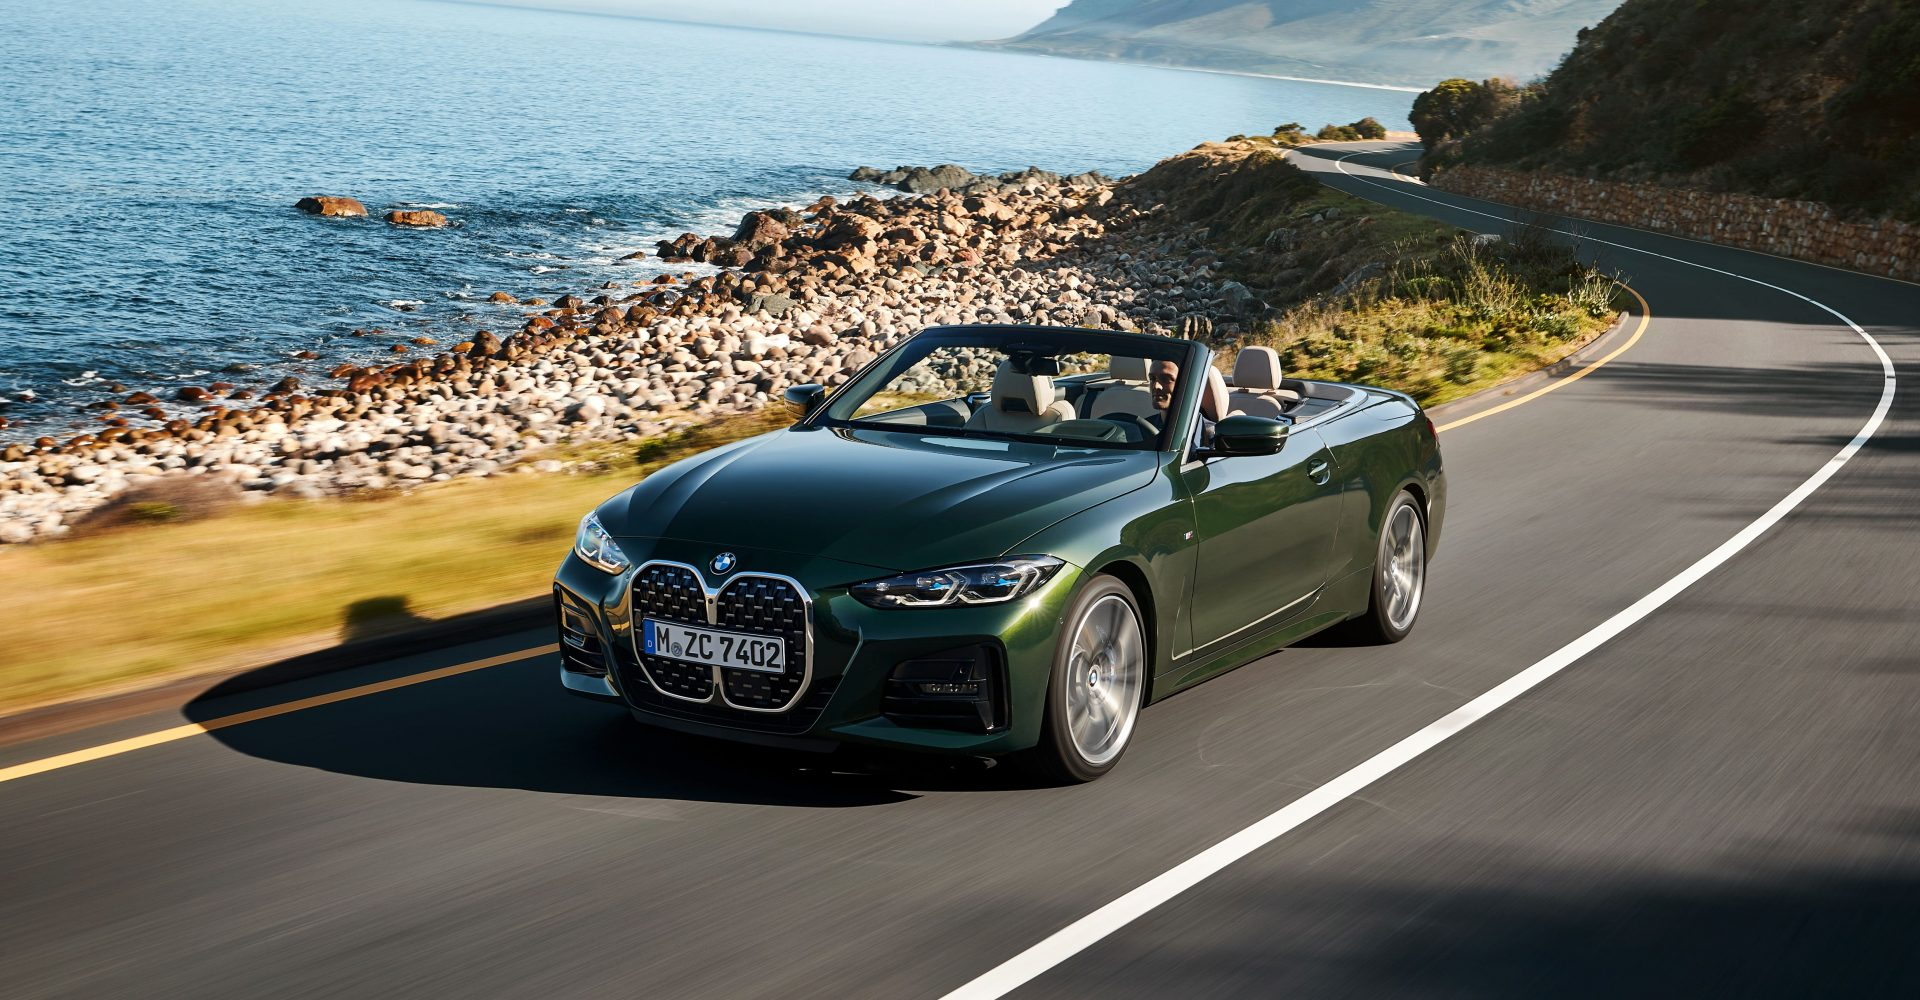 BMW unveils bold new 4 Series Convertible